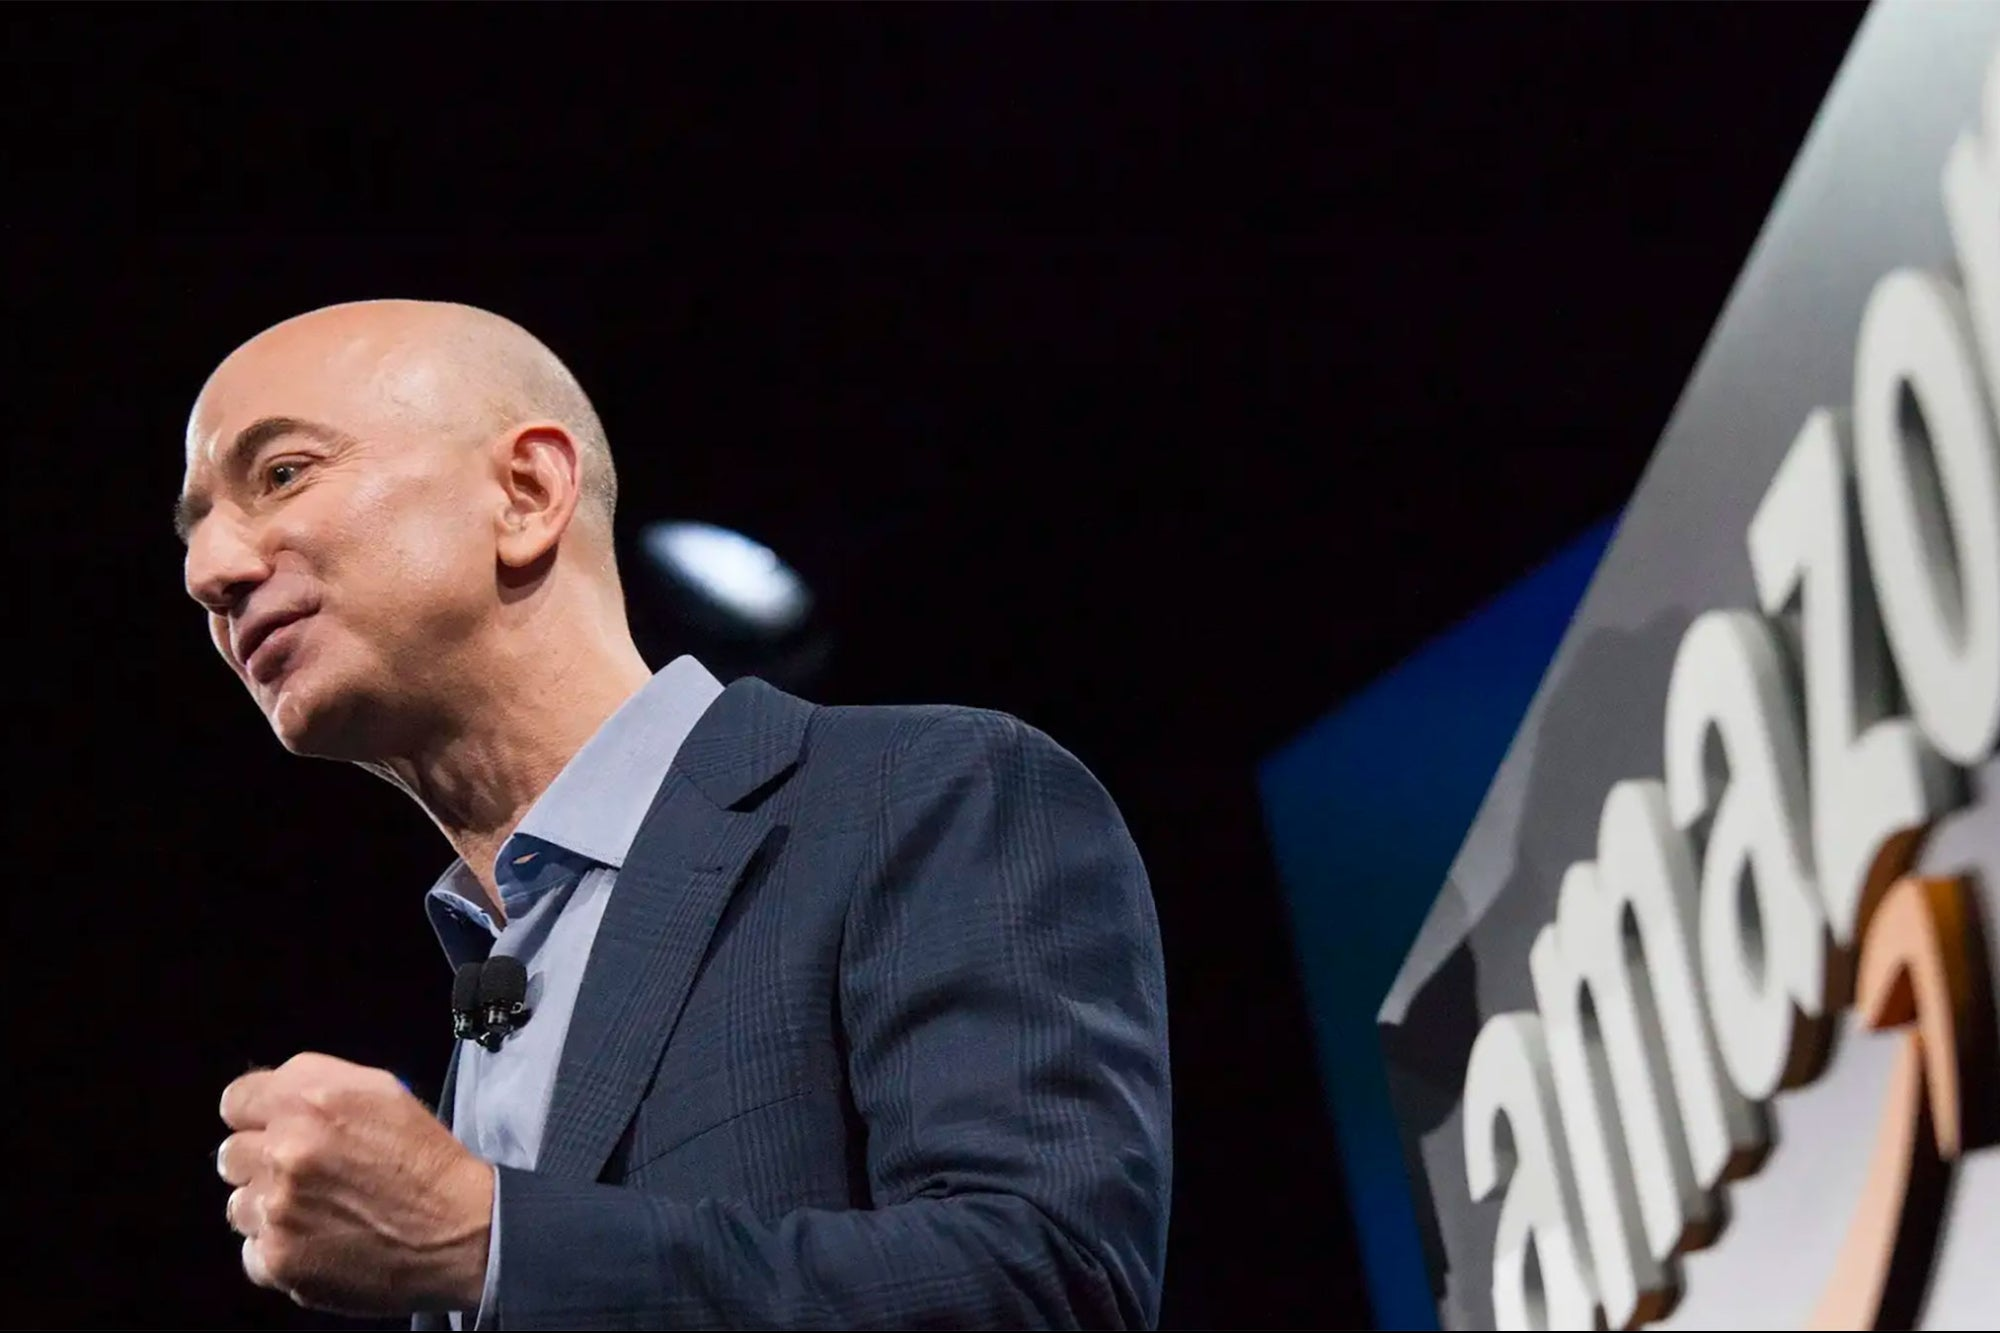 Jeff Bezos Now Worth More Than $200 Billion - Forbes